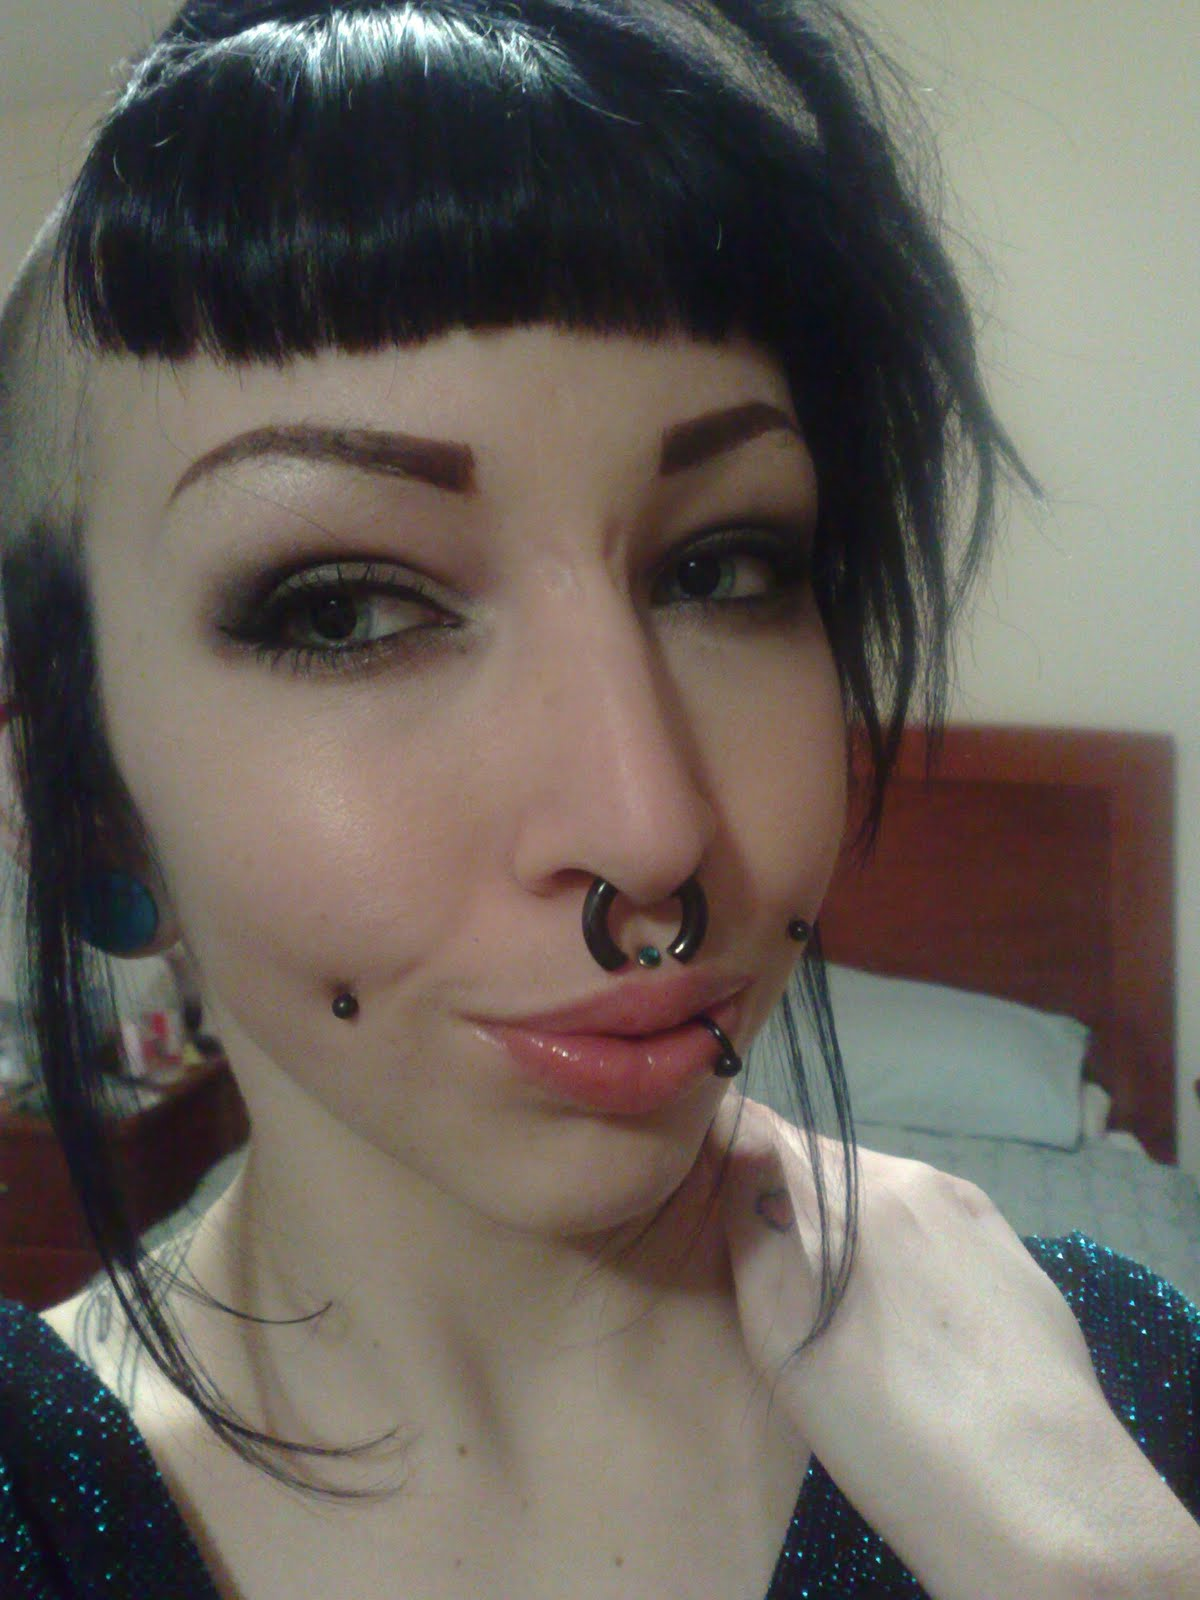 Eyebrow shaved lines congratulate, what